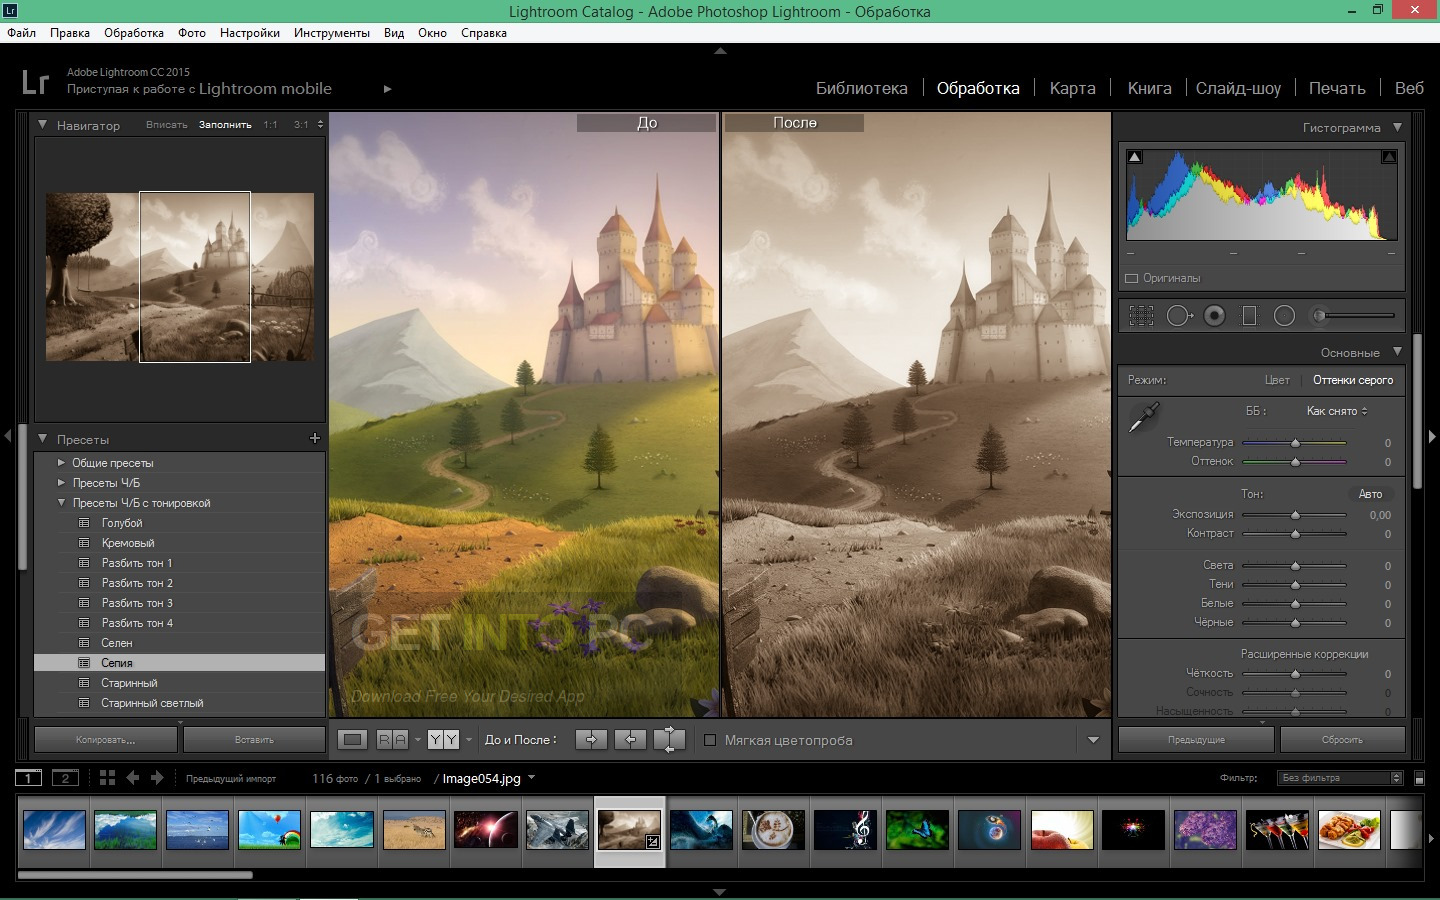 Adobe Photoshop Lightroom CC 6.8 Direct Link Download